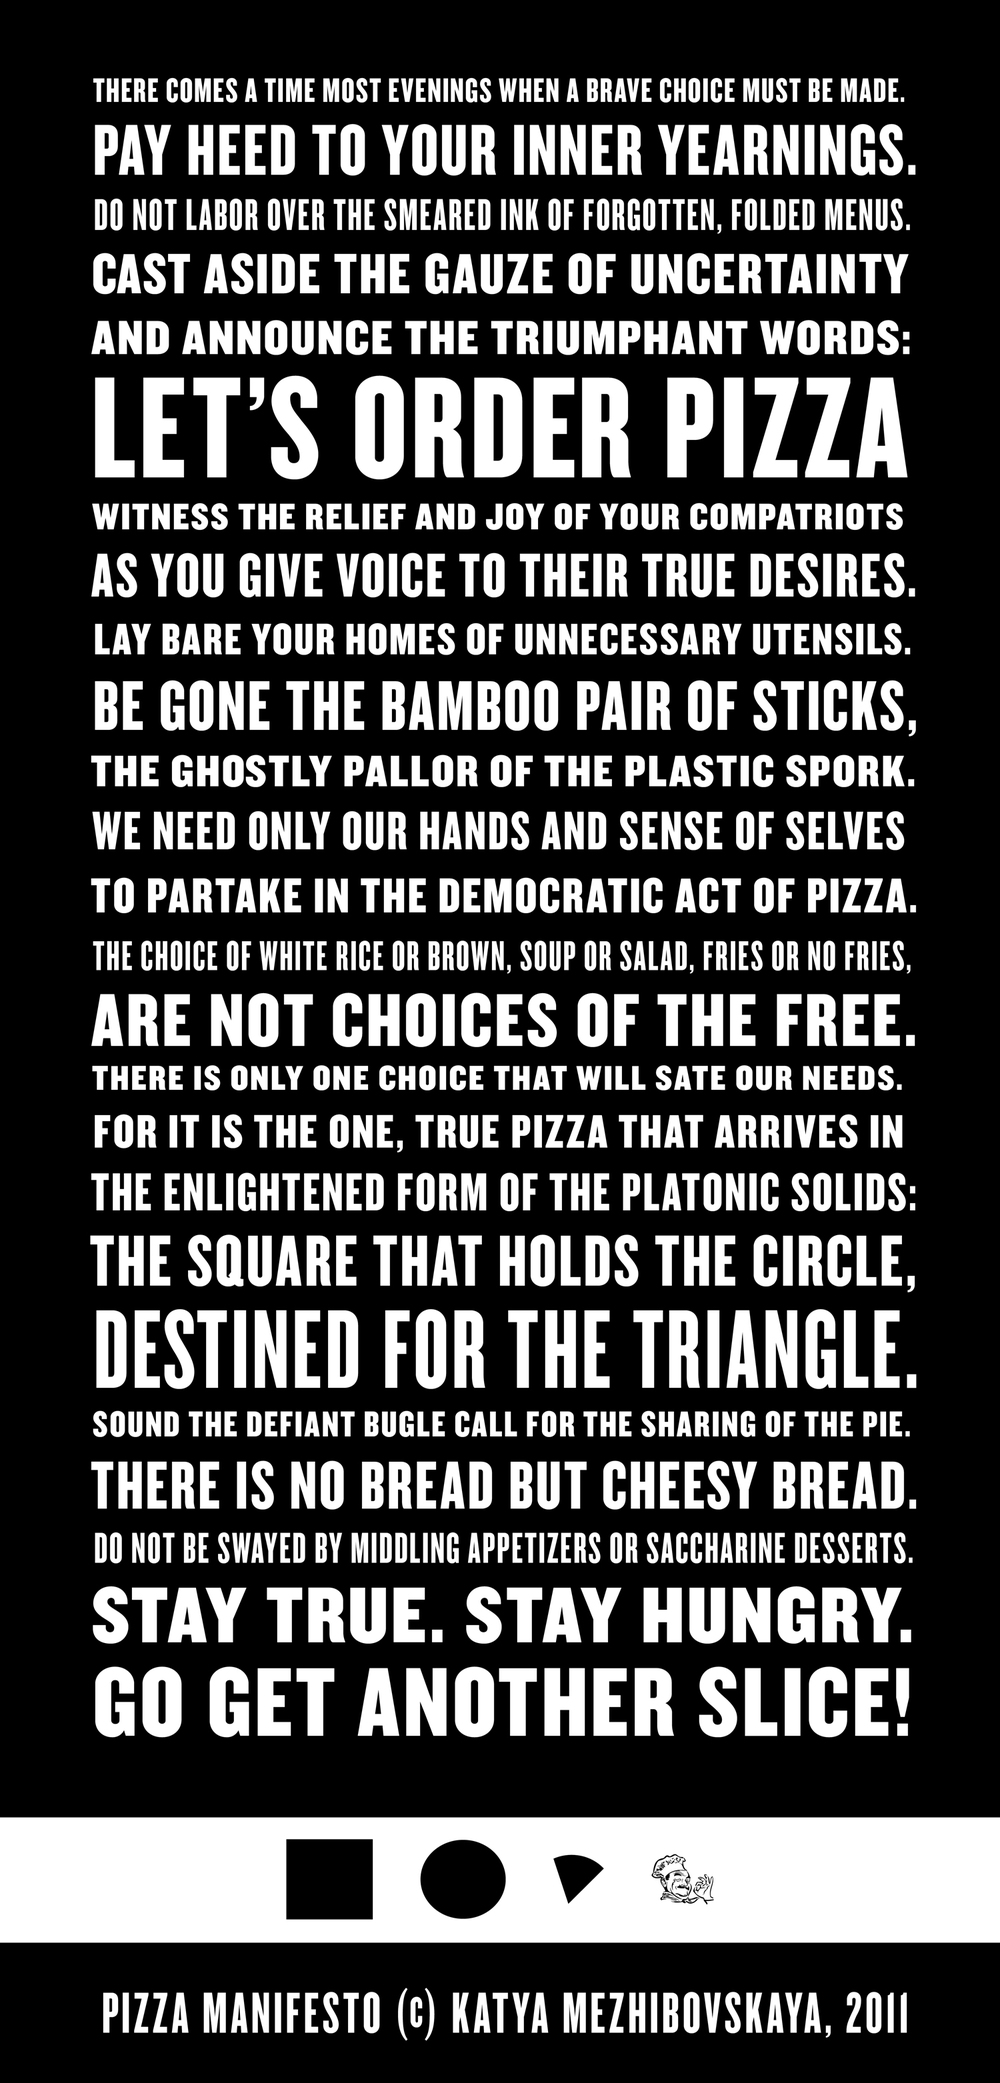 KMezhibovskaya_Pizza Manifesto_black_small.jpg